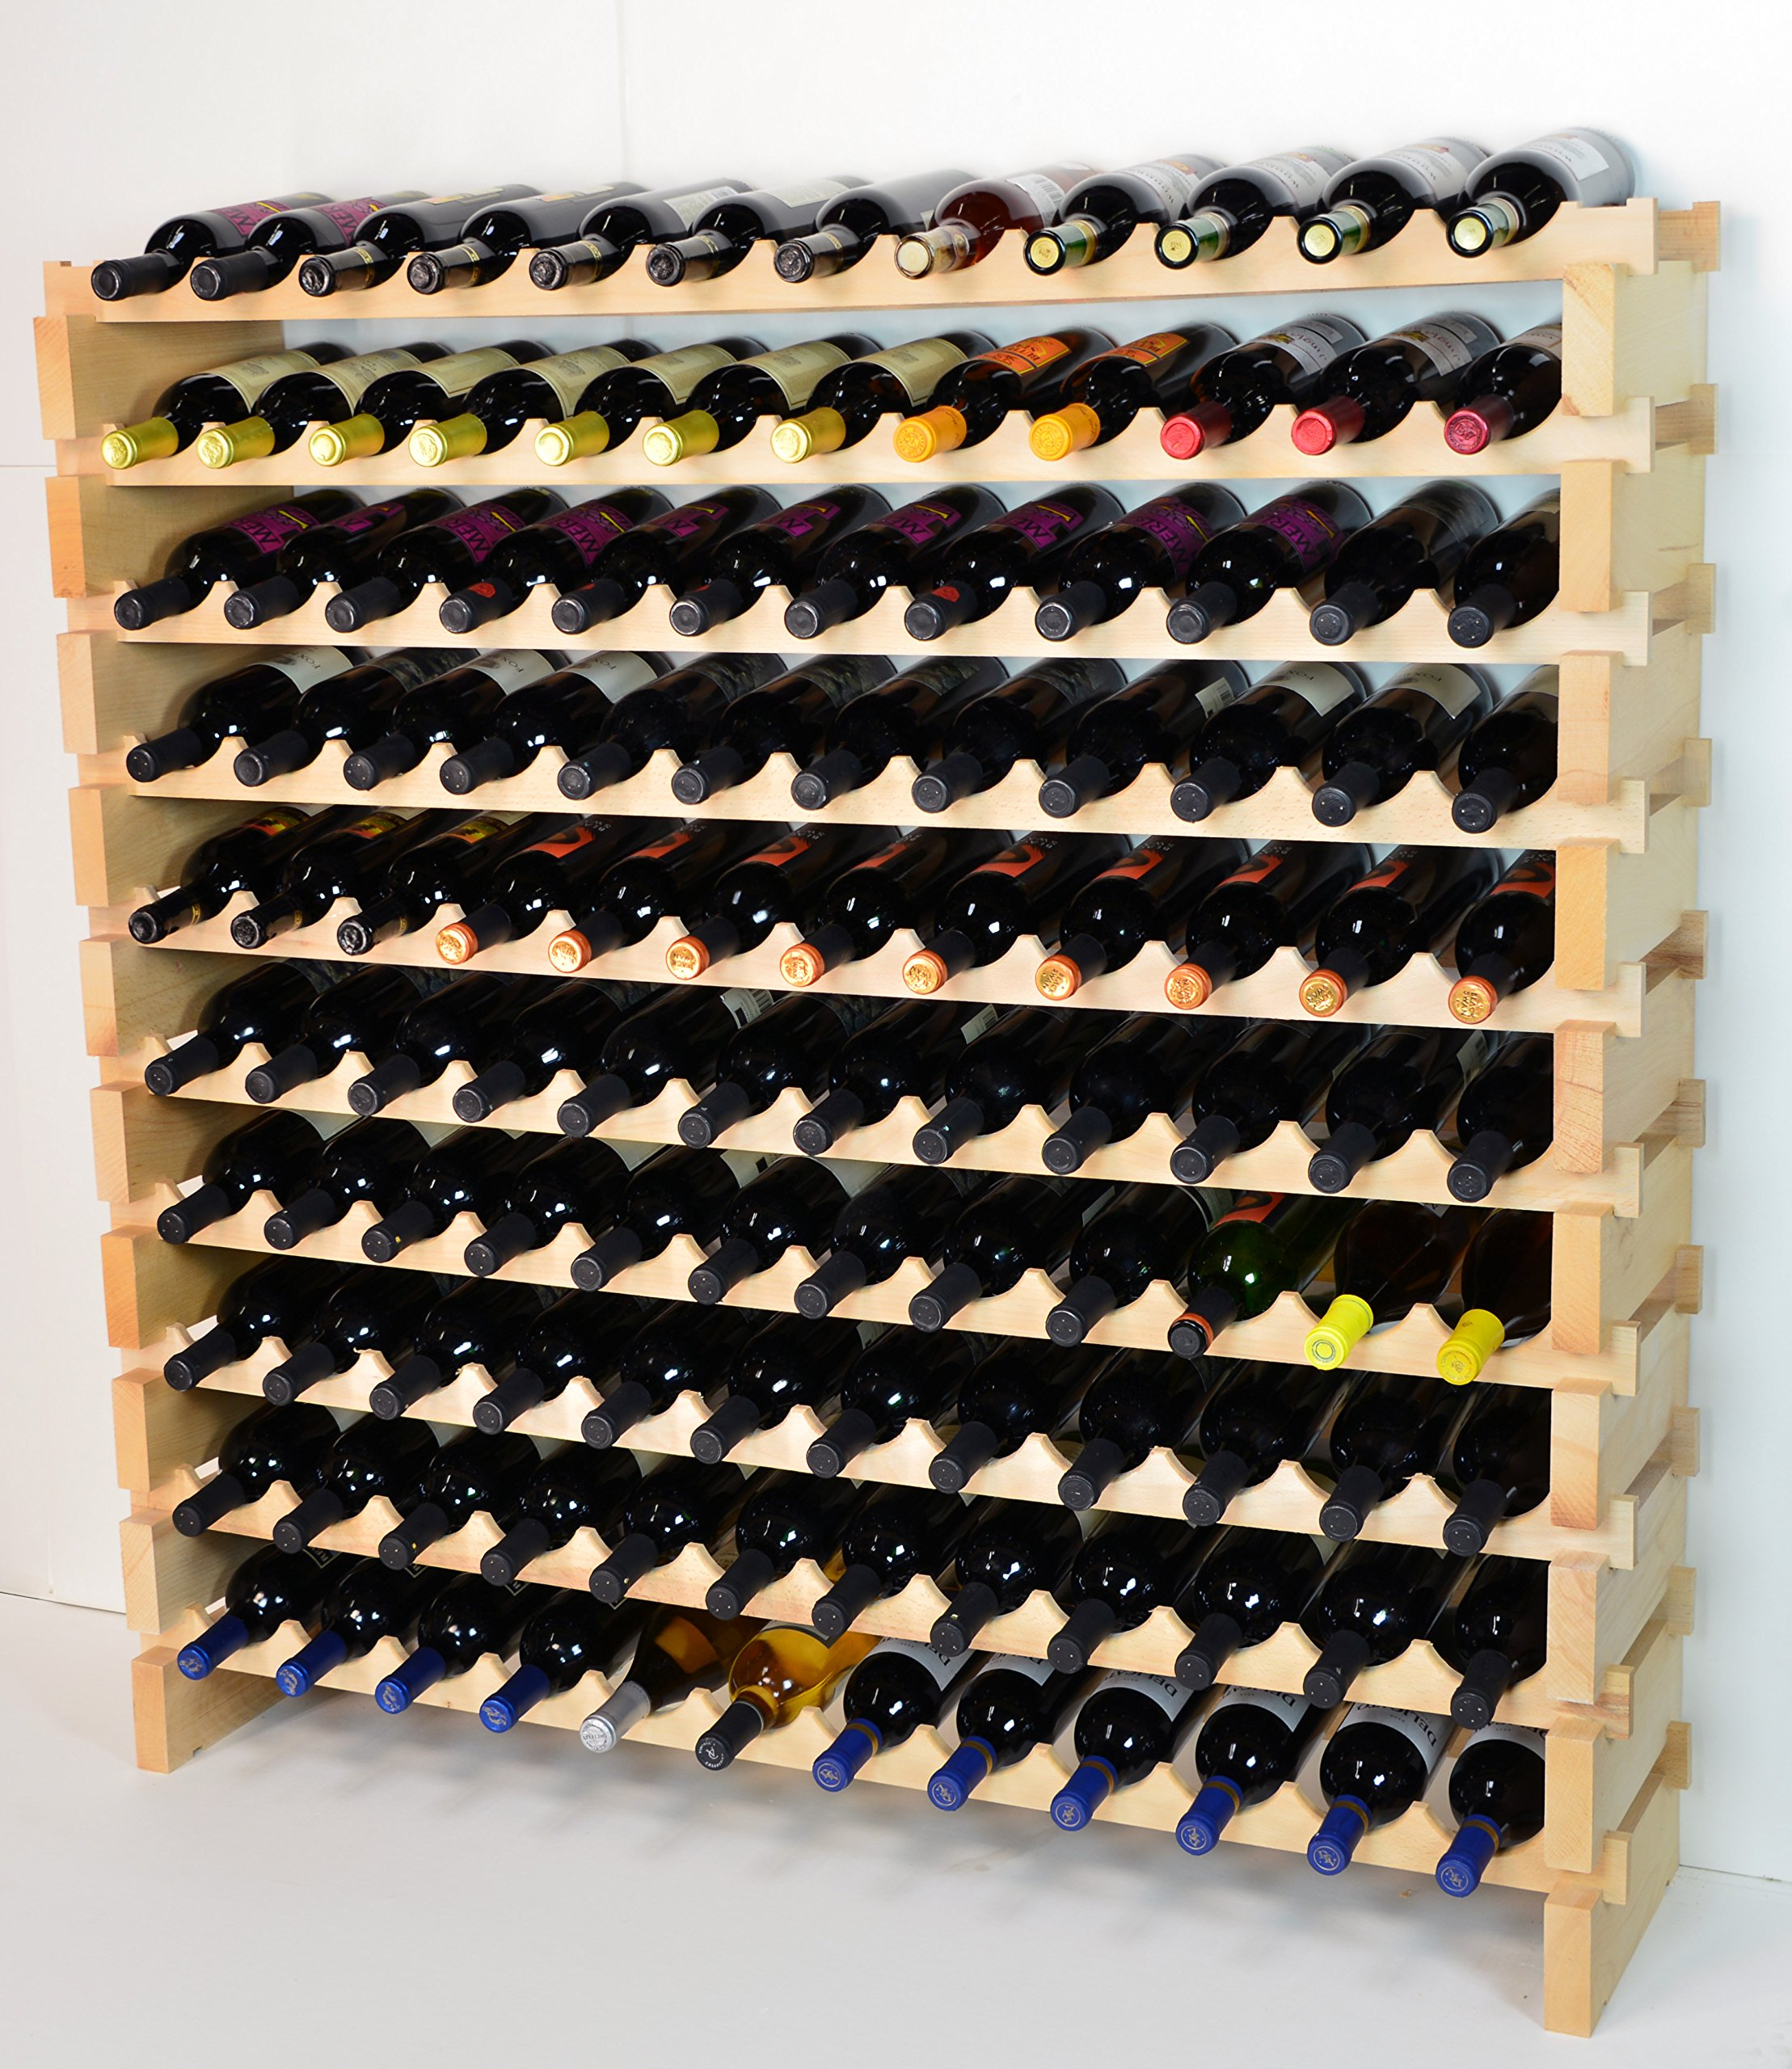 Modular Wine Rack Beechwood 48-144 Bottle Capacity 12 Bottles Across up to 12 Rows Newest Improved Model (120 Bottles - 10 Rows) by sfDisplay.com,LLC. (Image #1)